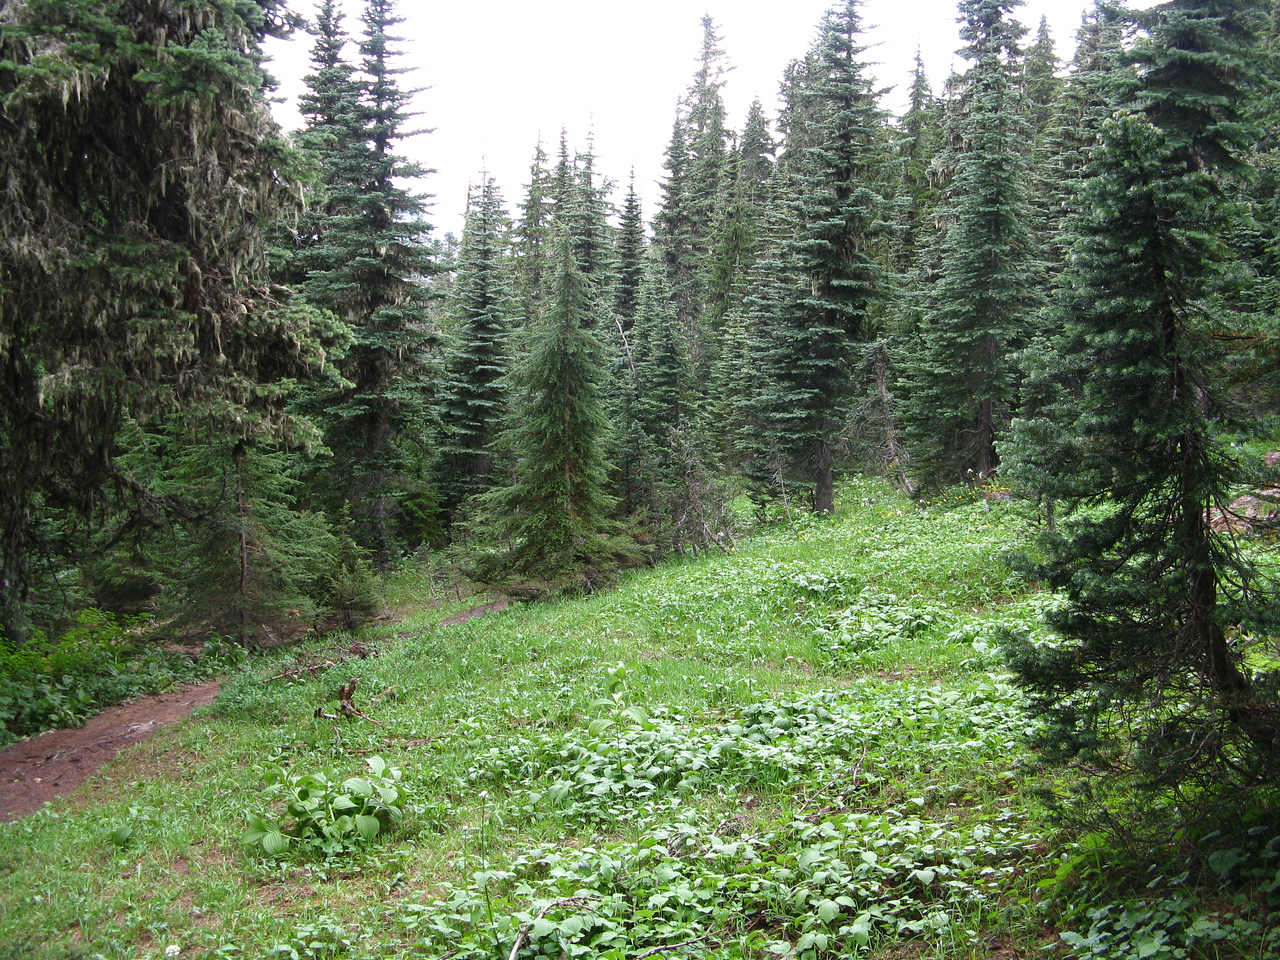 The trail climbs 1900 feet in about 2 miles.   After trudging up the steep trail, we welcomed the sight of a meadow in the subalpine forest.